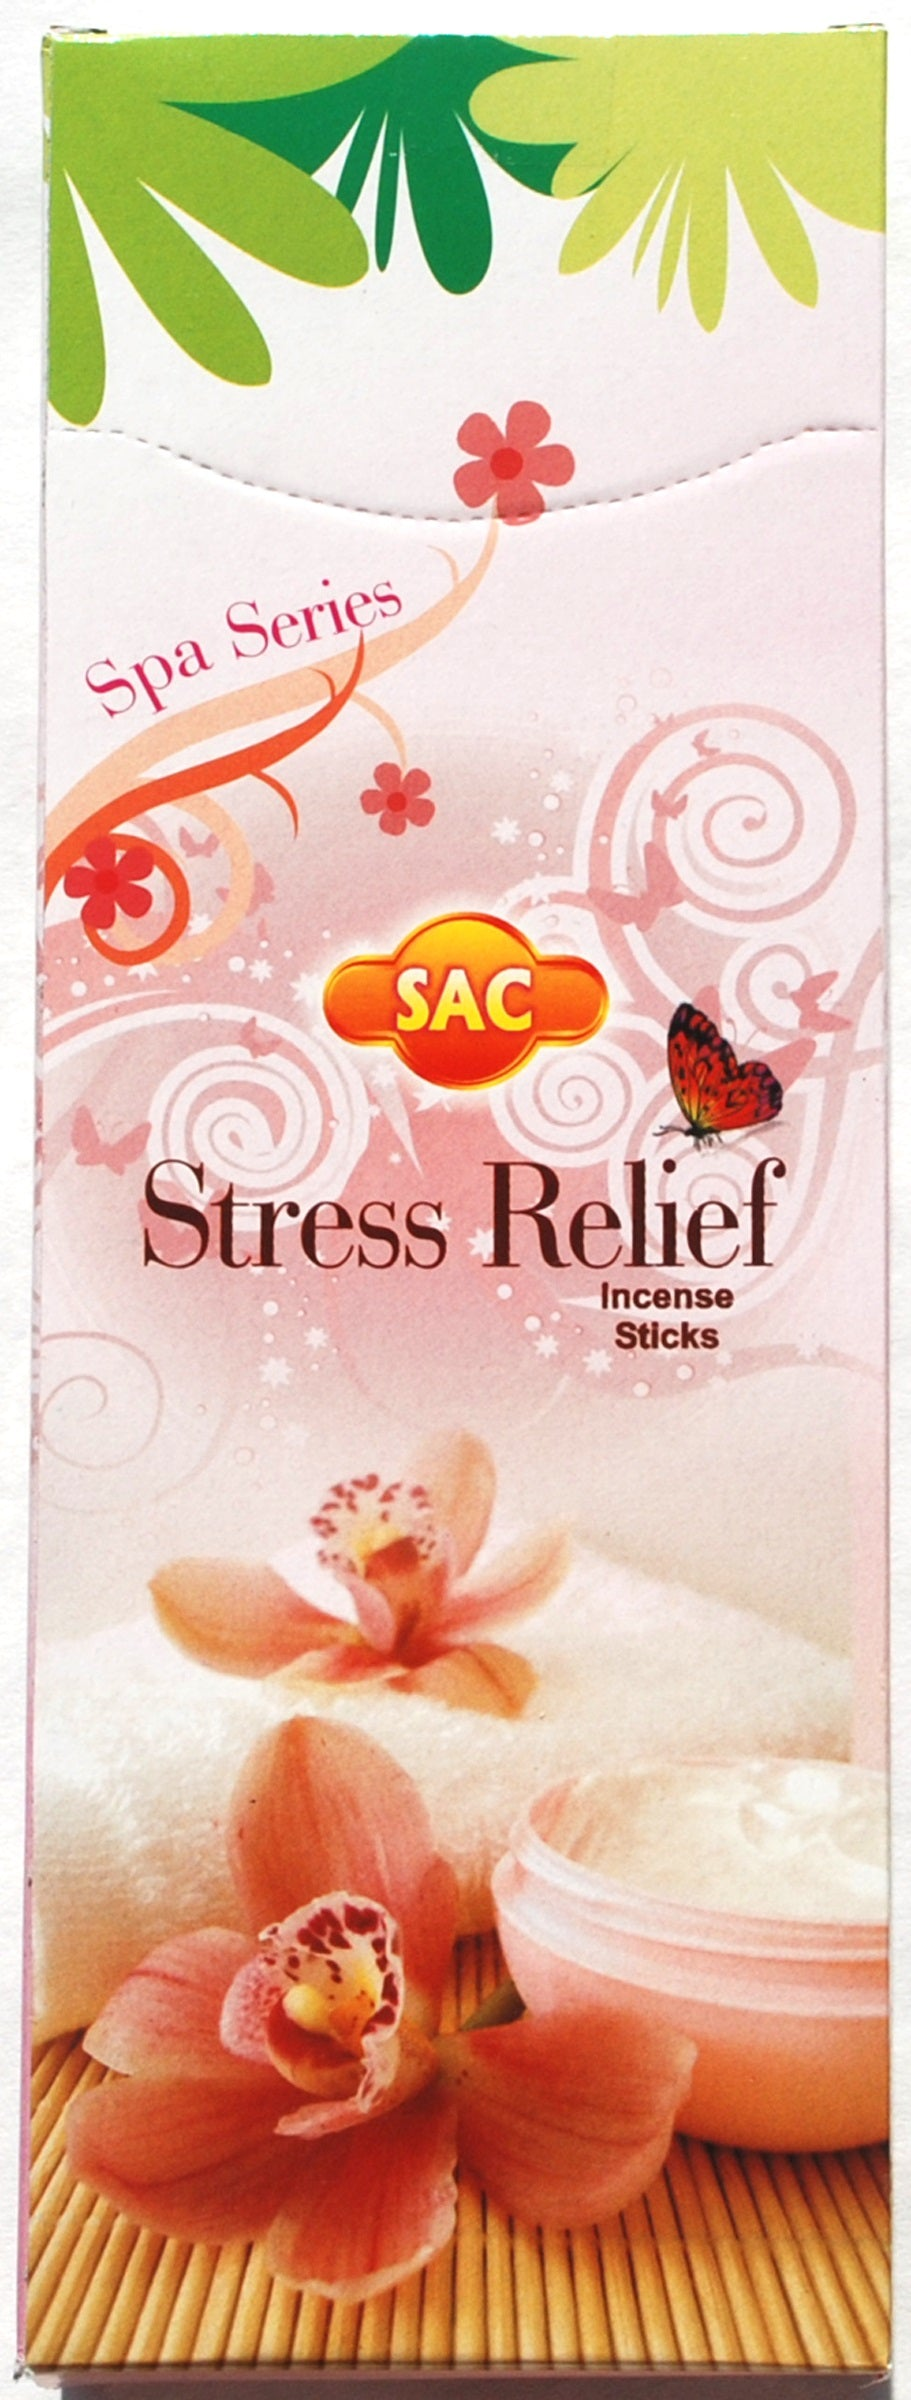 Stress Relief - Spa Series